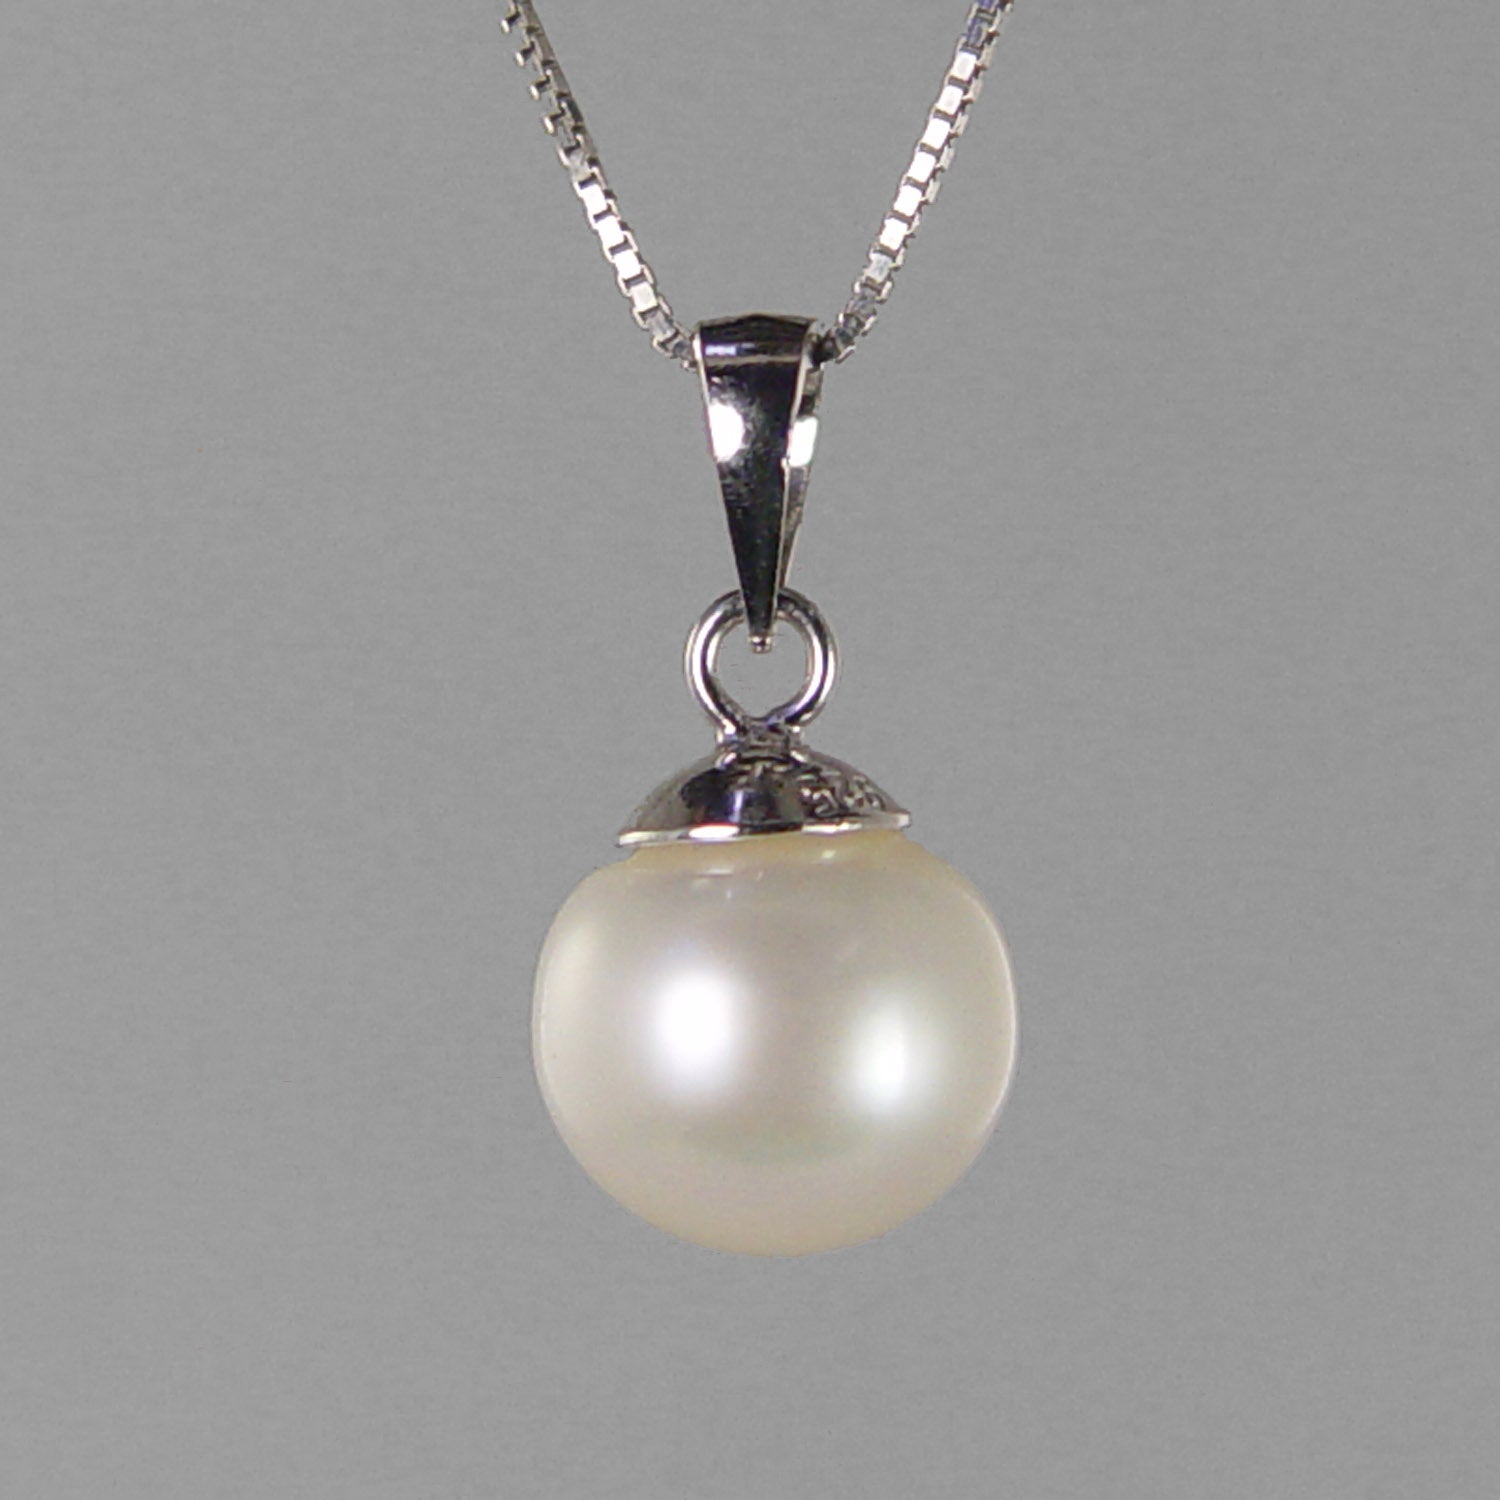 Pearl 6 ct 9.5 mm Round Freshwater Pearl With Sterling Silver Bail Pendant